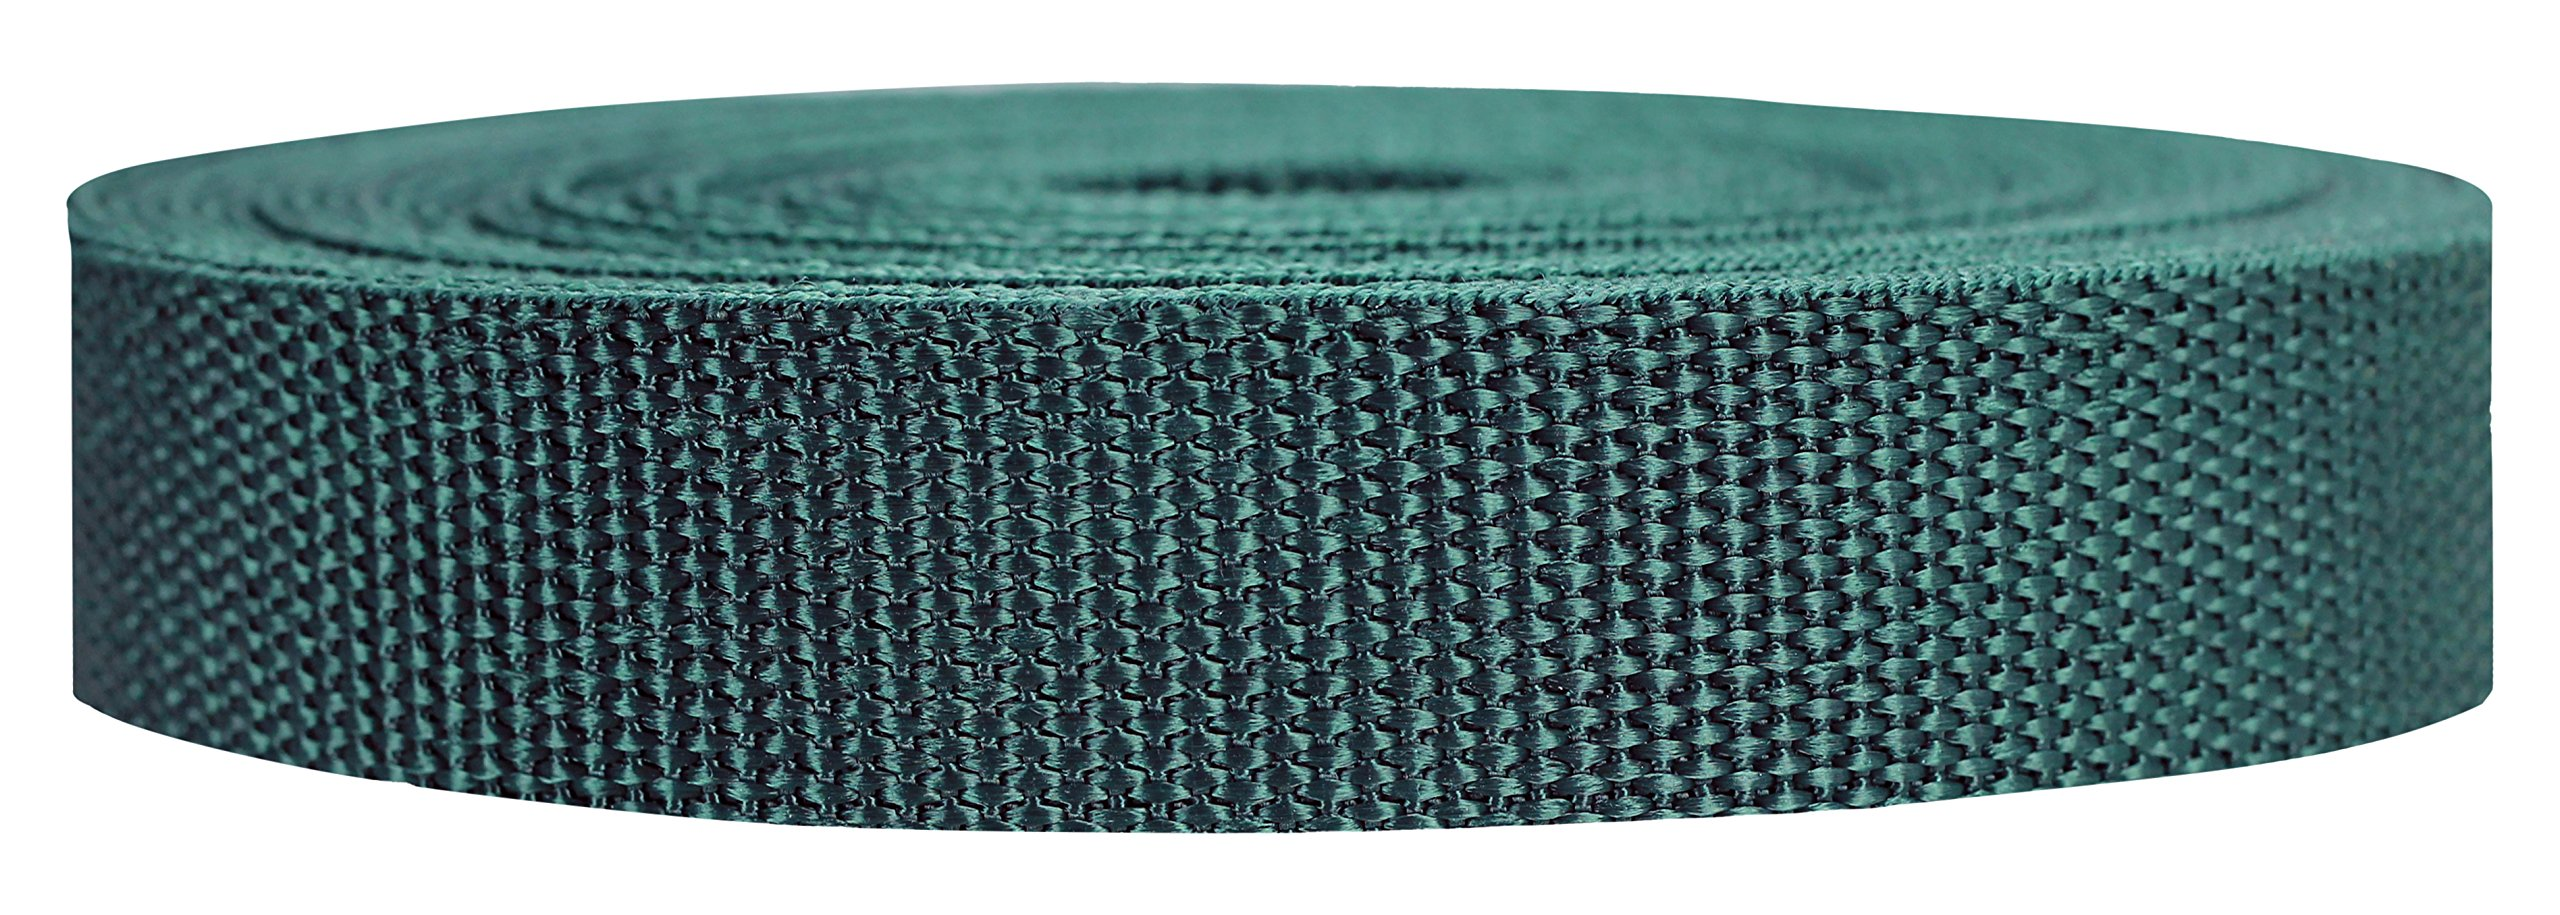 Strapworks Heavyweight Polypropylene Webbing - Heavy Duty Poly Strapping for Outdoor DIY Gear Repair, 1 Inch x 10 Yards - Forest Green